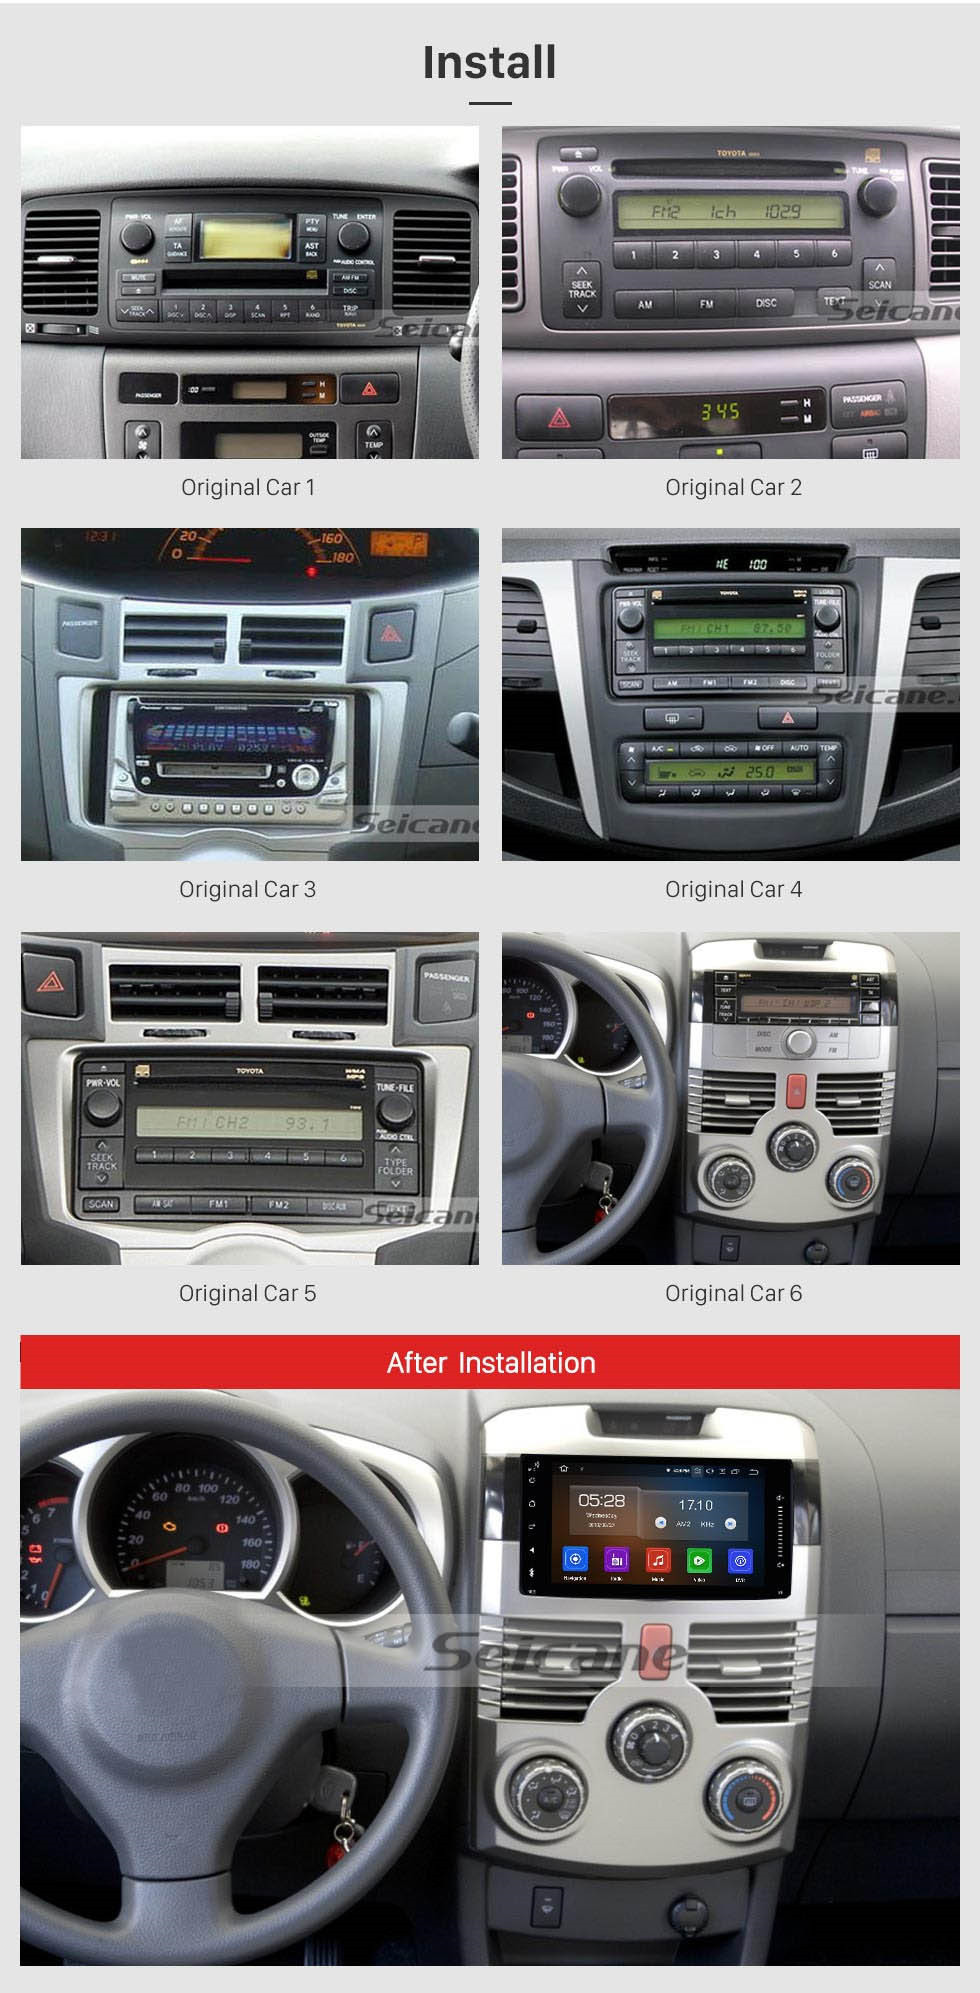 Seicane Full touchscreen 2003-2010 Toyota  Avanza Android 10.0 Radio GPS navigation system support Bluetooth Mirror link OBD2 TPMS DVR TV USB 4G WIFI Backup camera